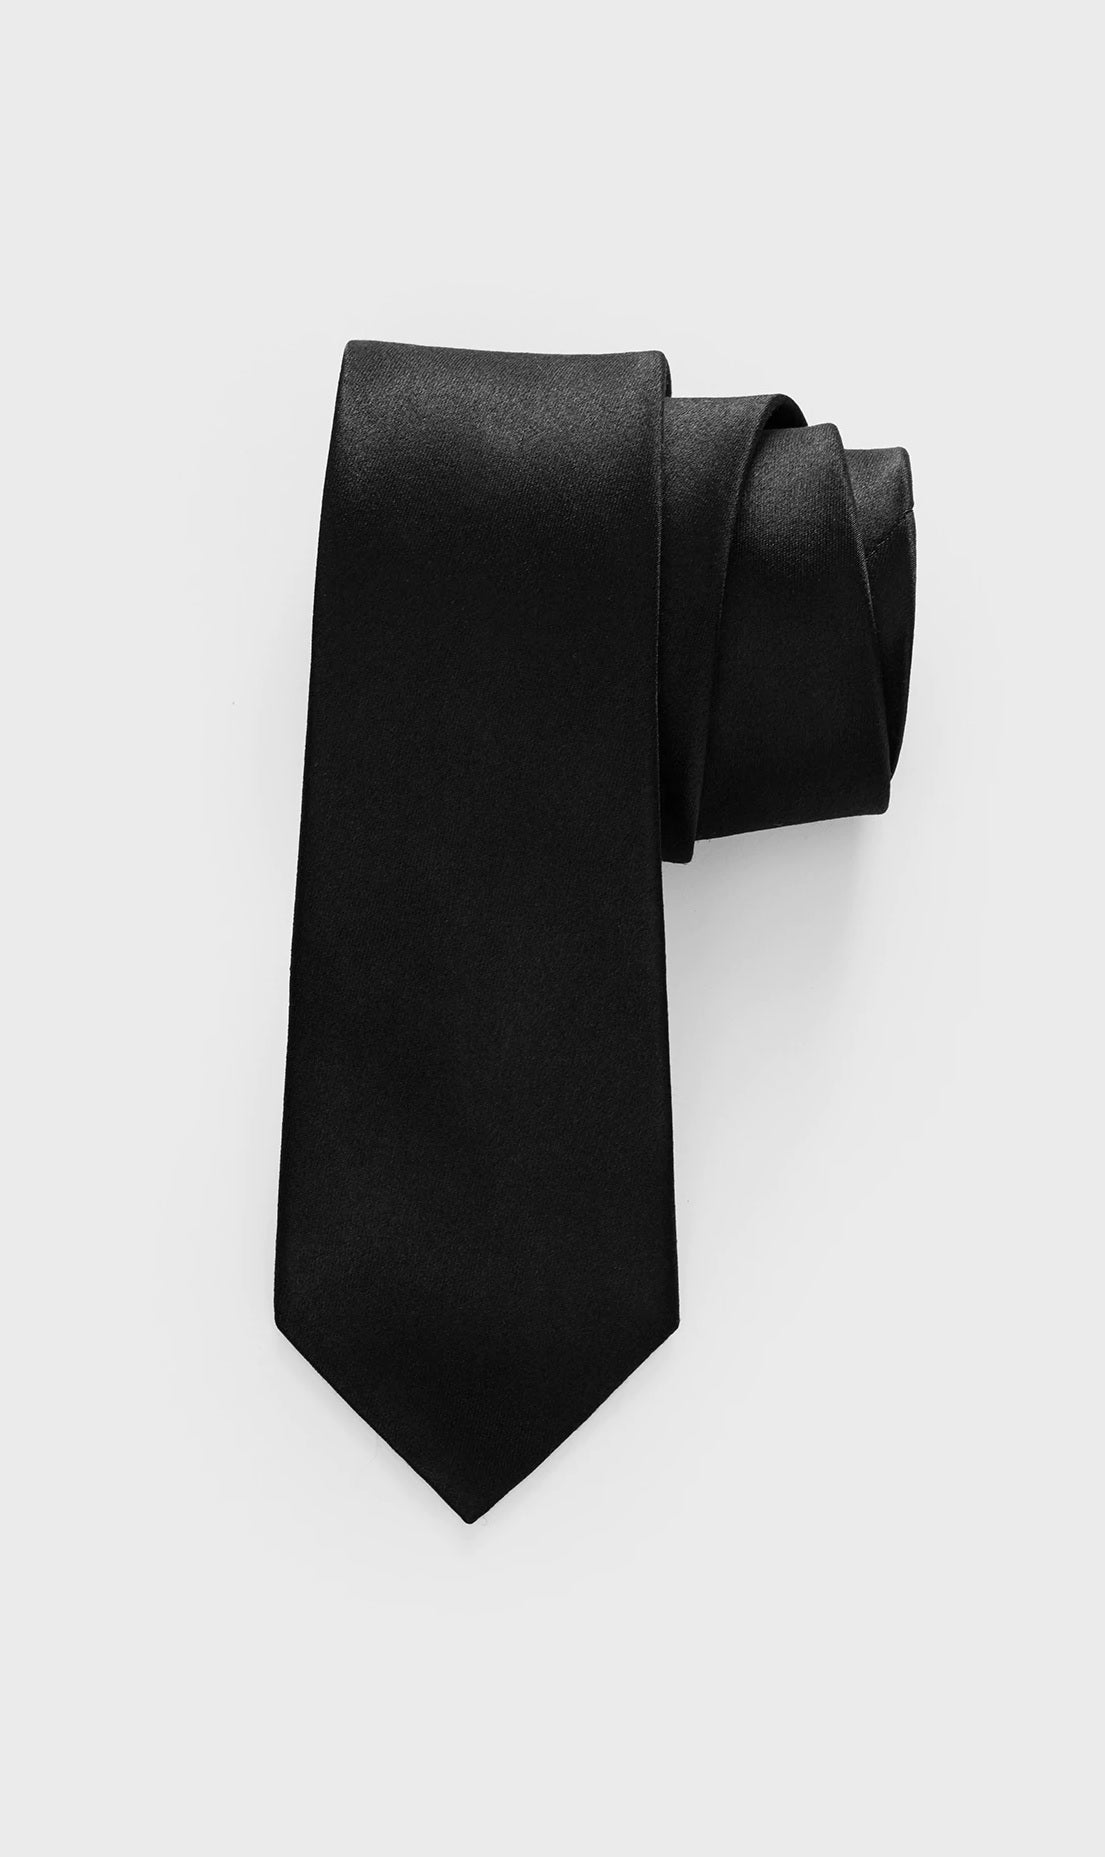 Black Satin Necktie